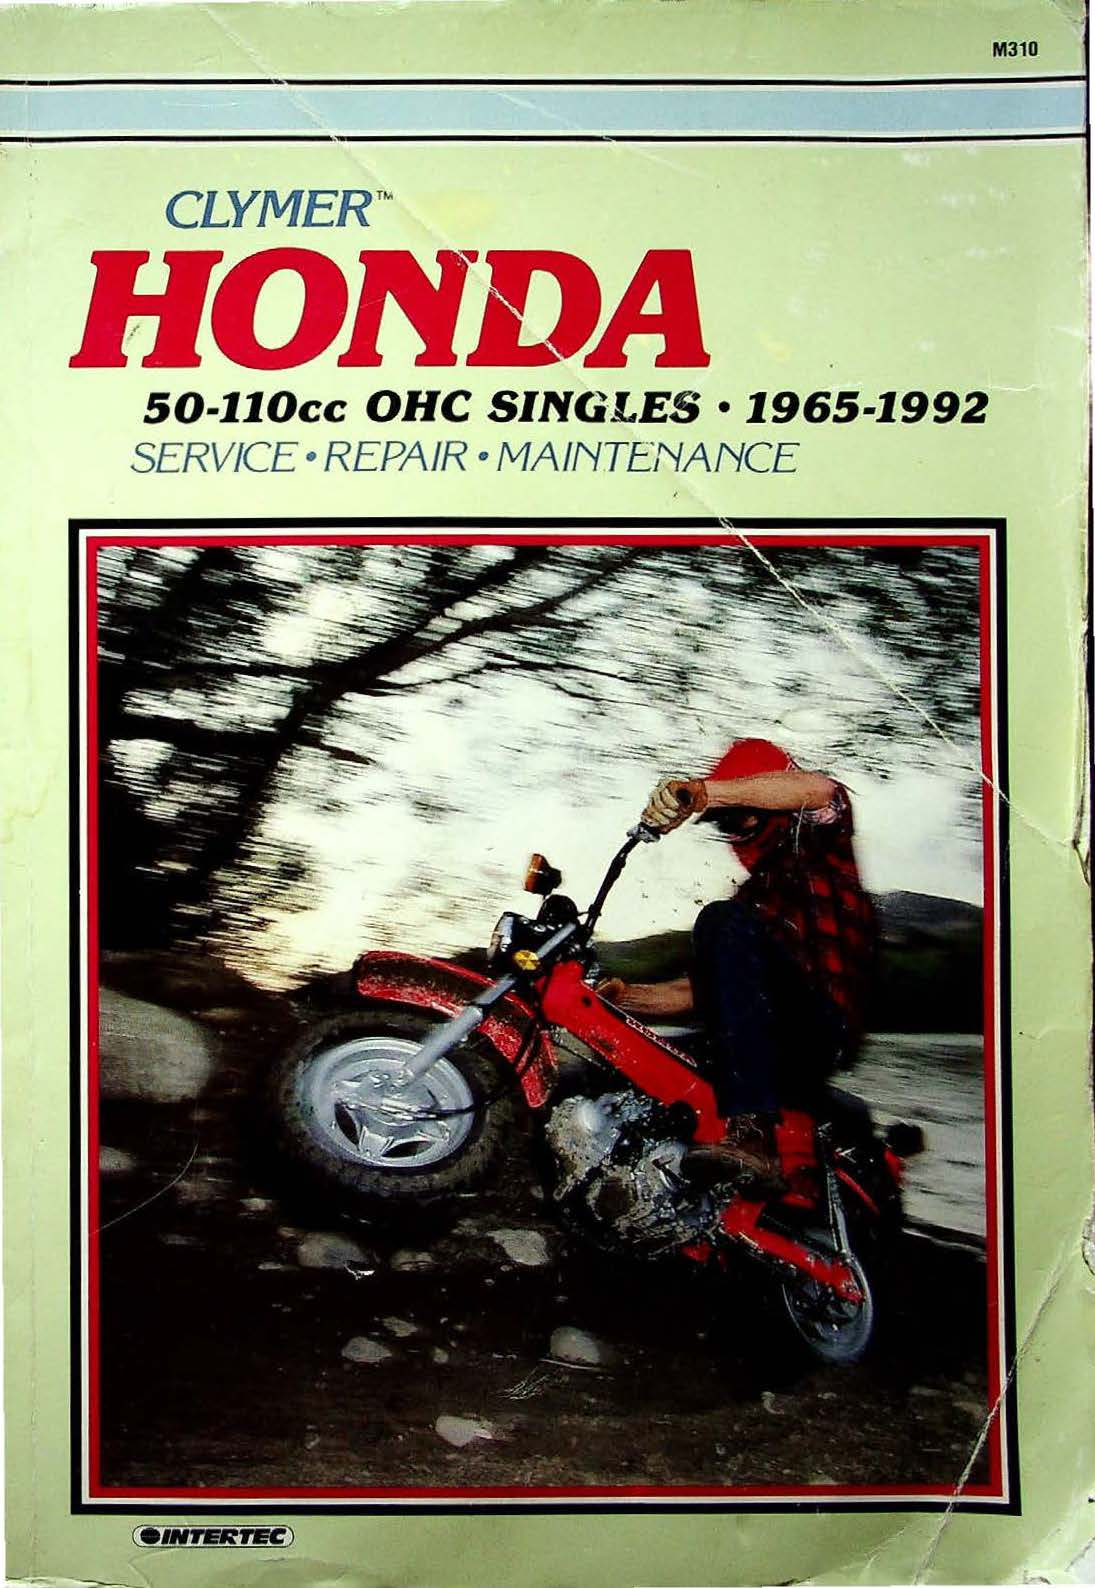 Clymer Honda 50-110cc ohc singles (1965-1992) Workshop Manual